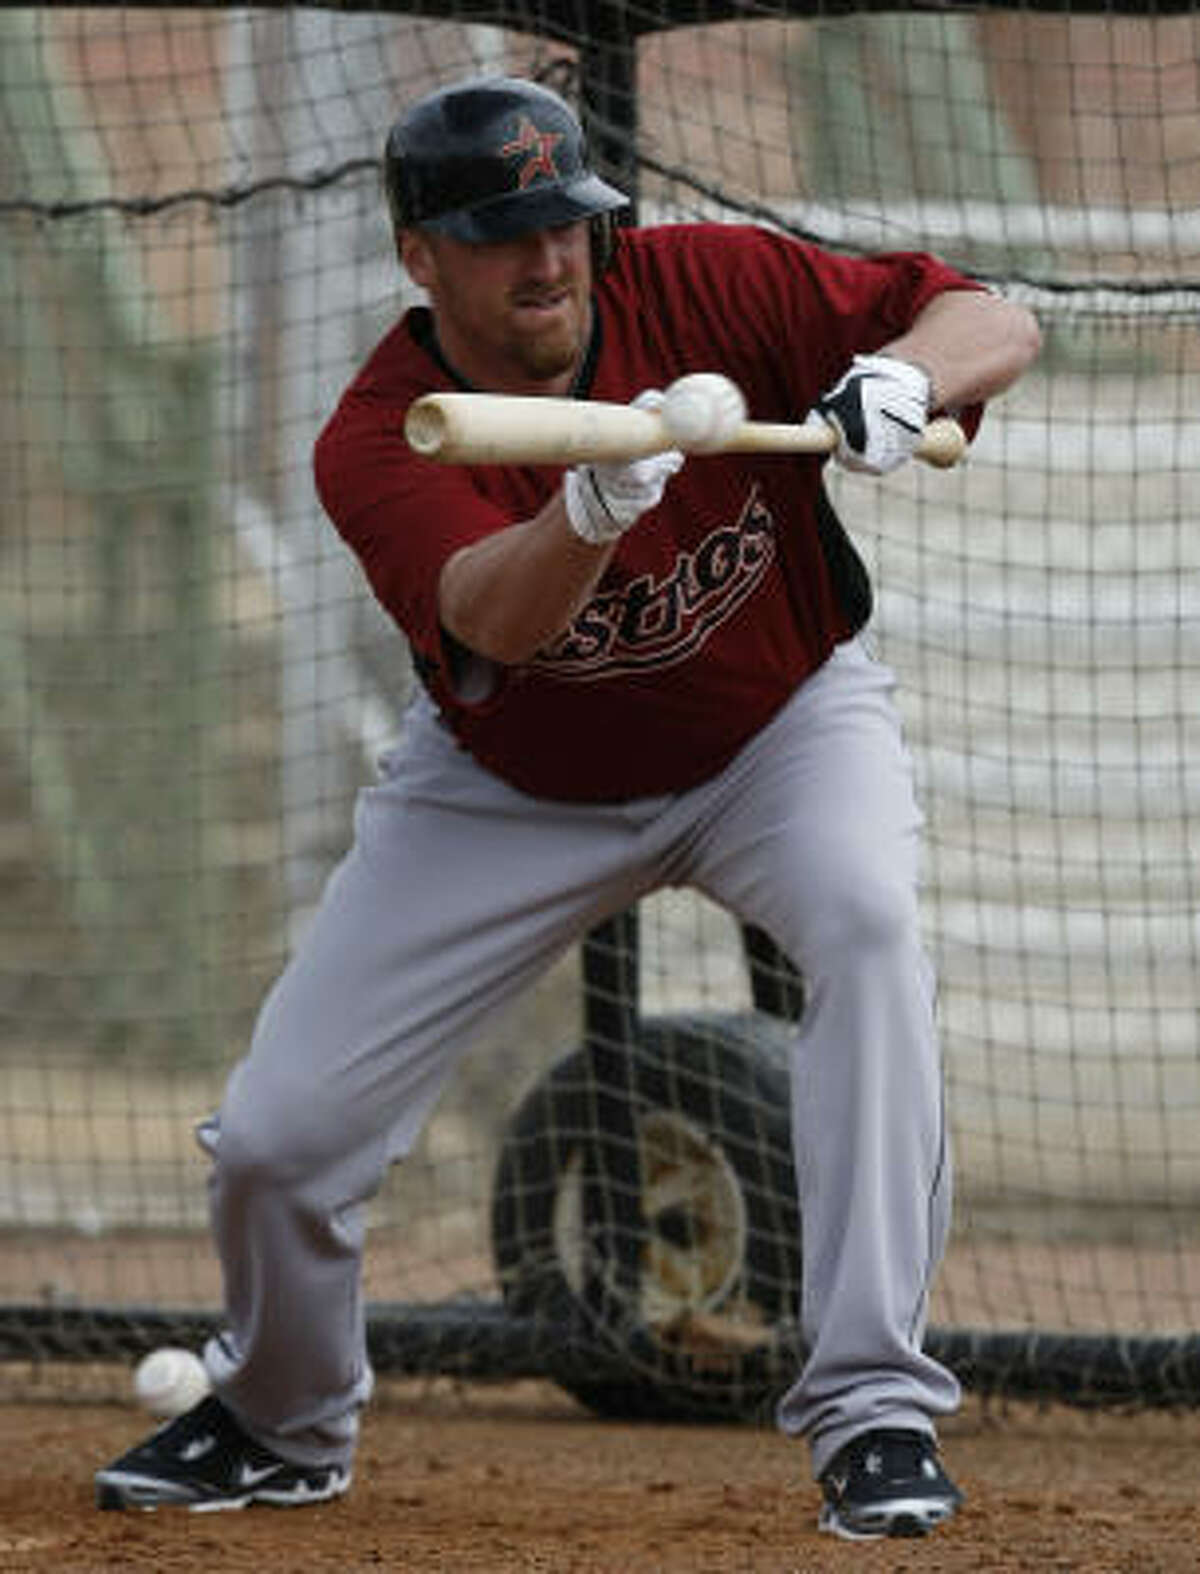 Pitcher Brett Myers works on his bunting form during Day 3 of spring training.